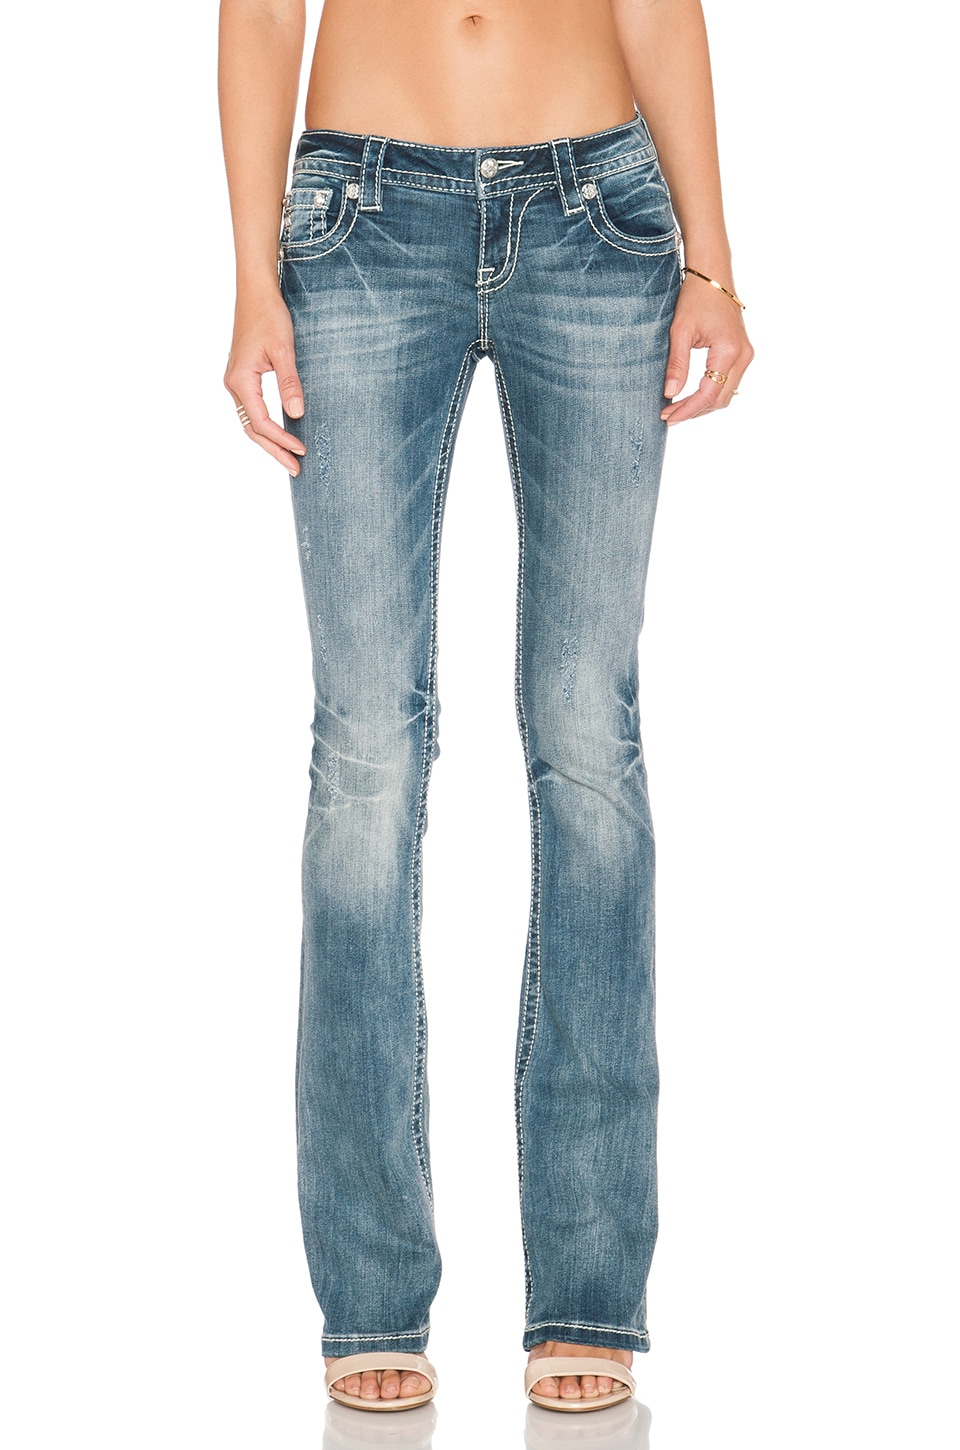 Miss Me Jeans Bootcut Jean in Med 314